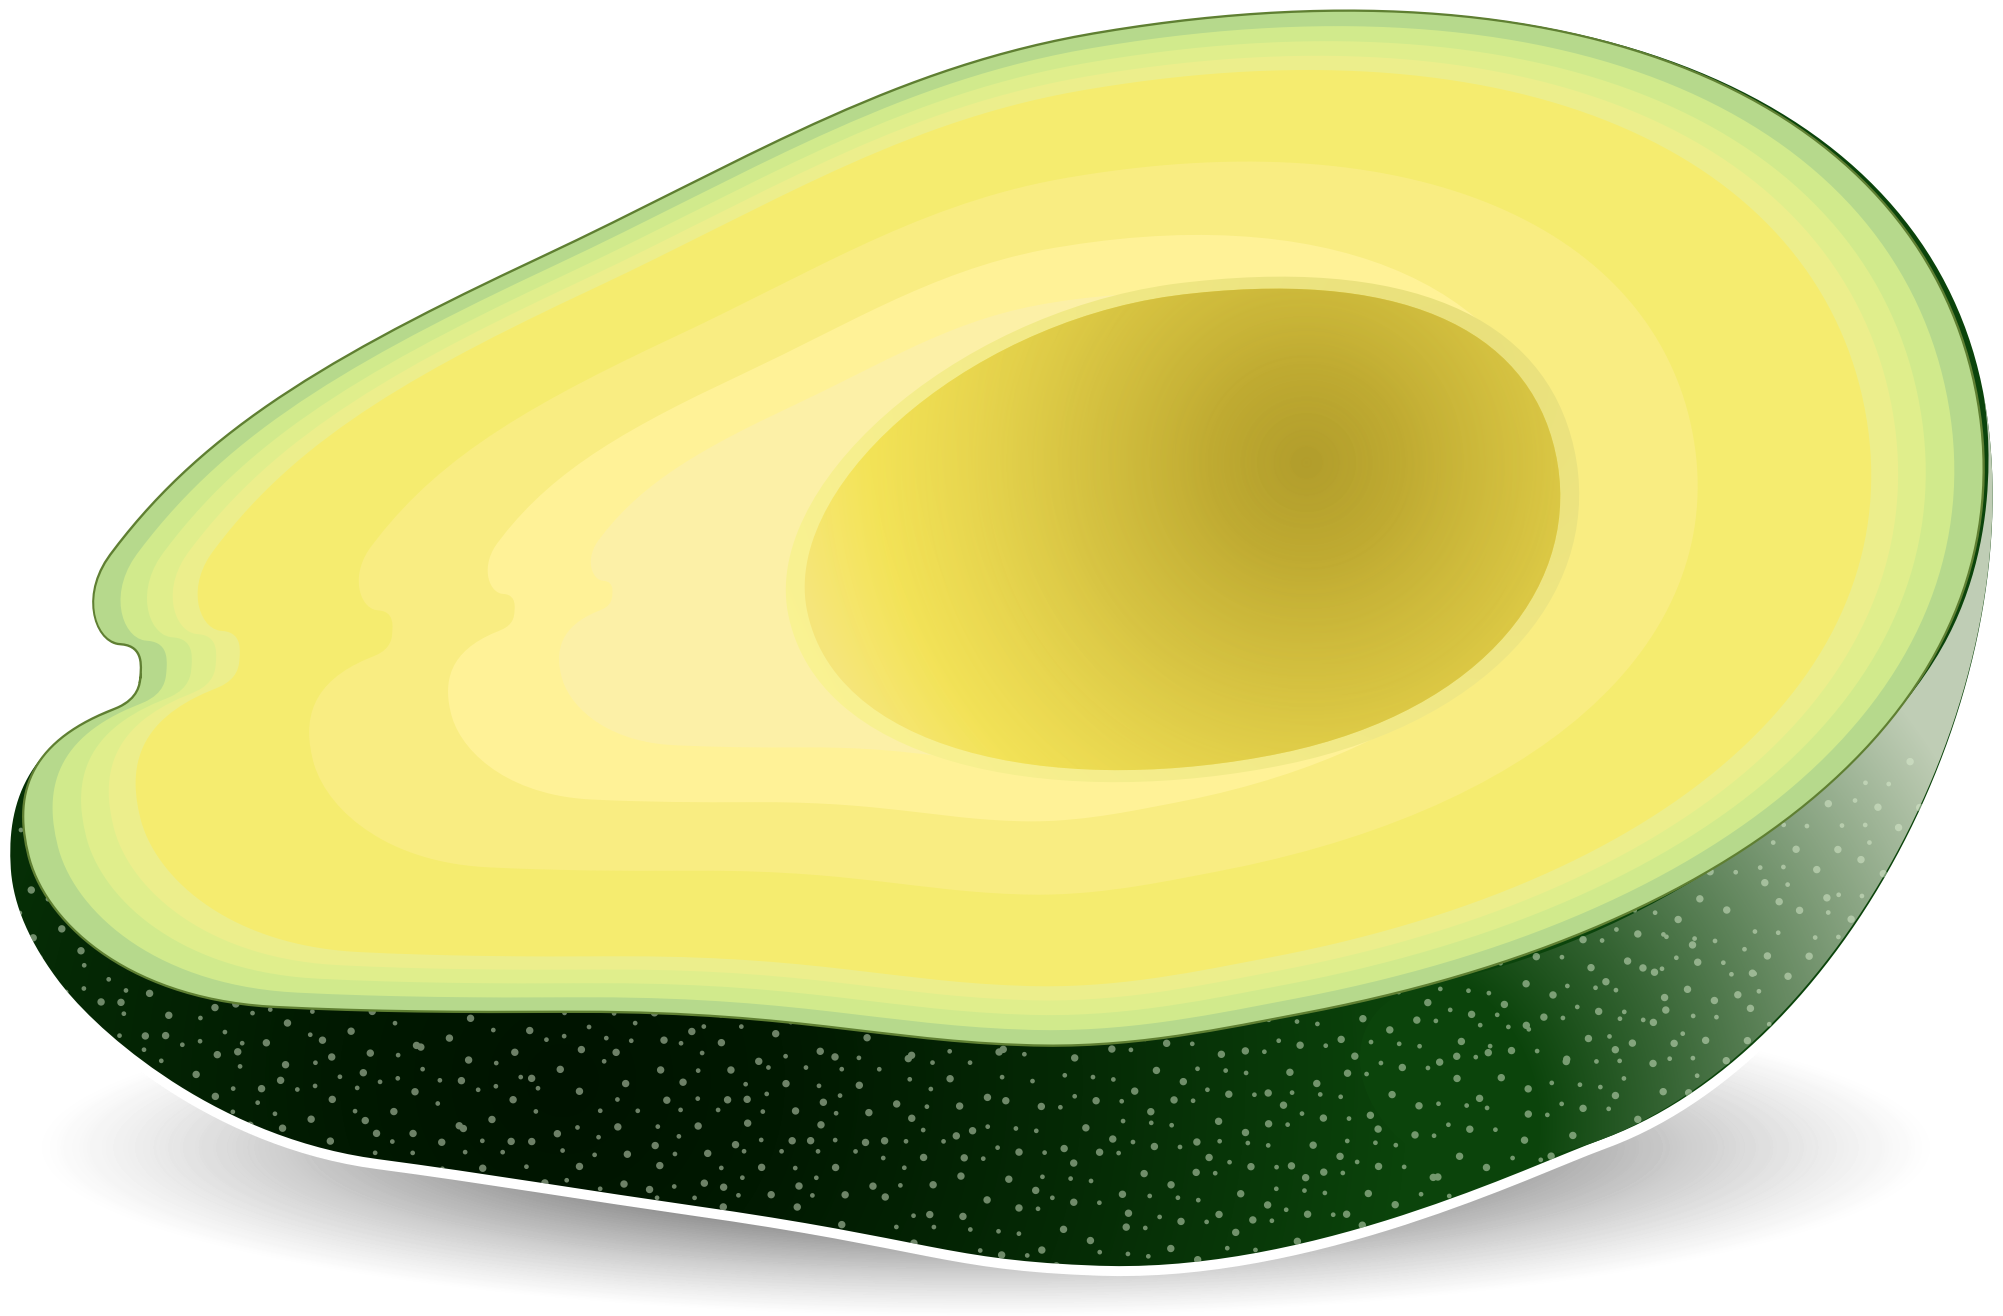 Png images free download. Avocado clipart transparent background